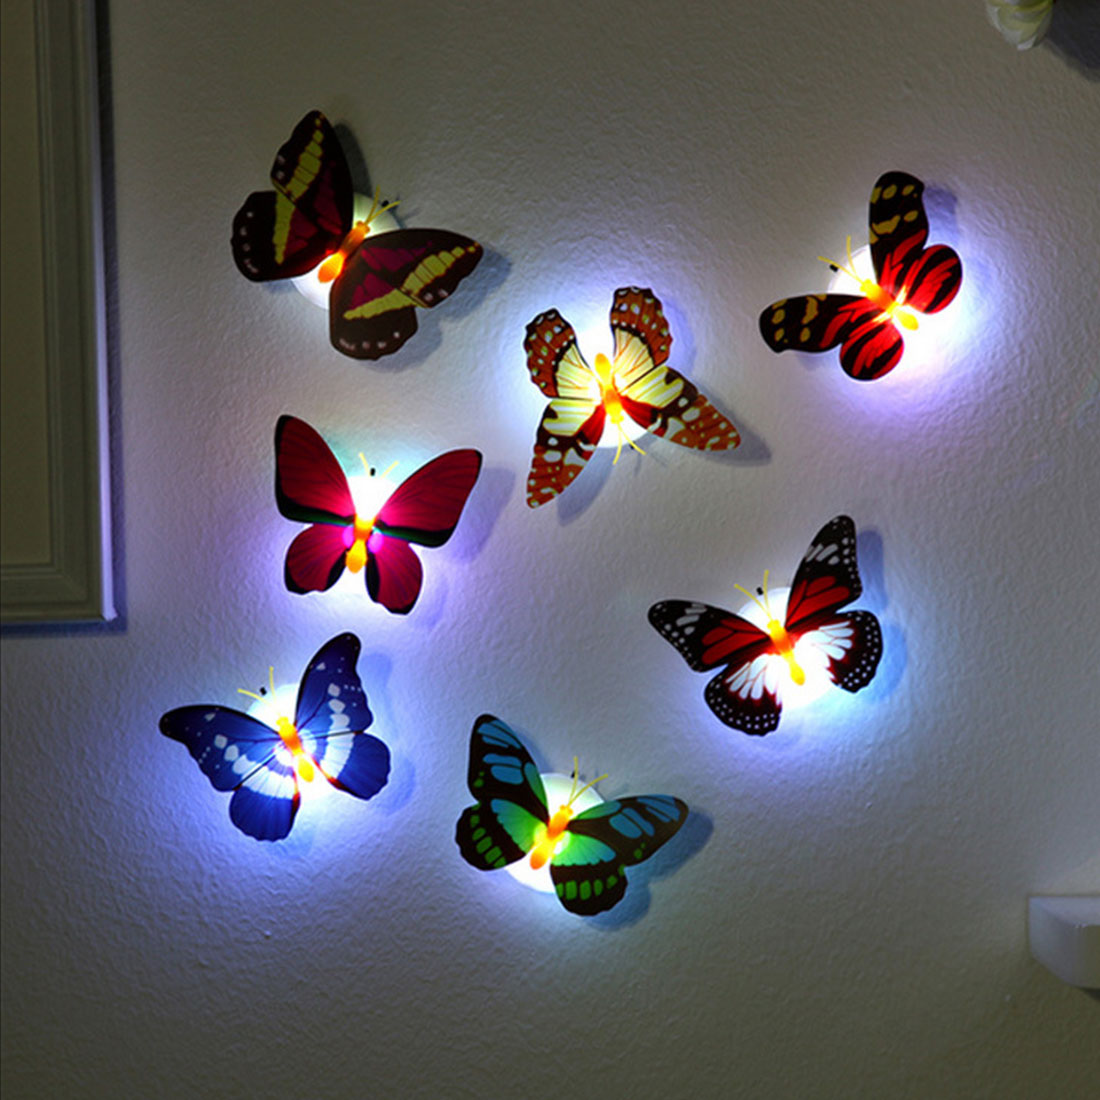 LED 3D Butterfly Wall Lights (10 pieces) - YouTech.Me